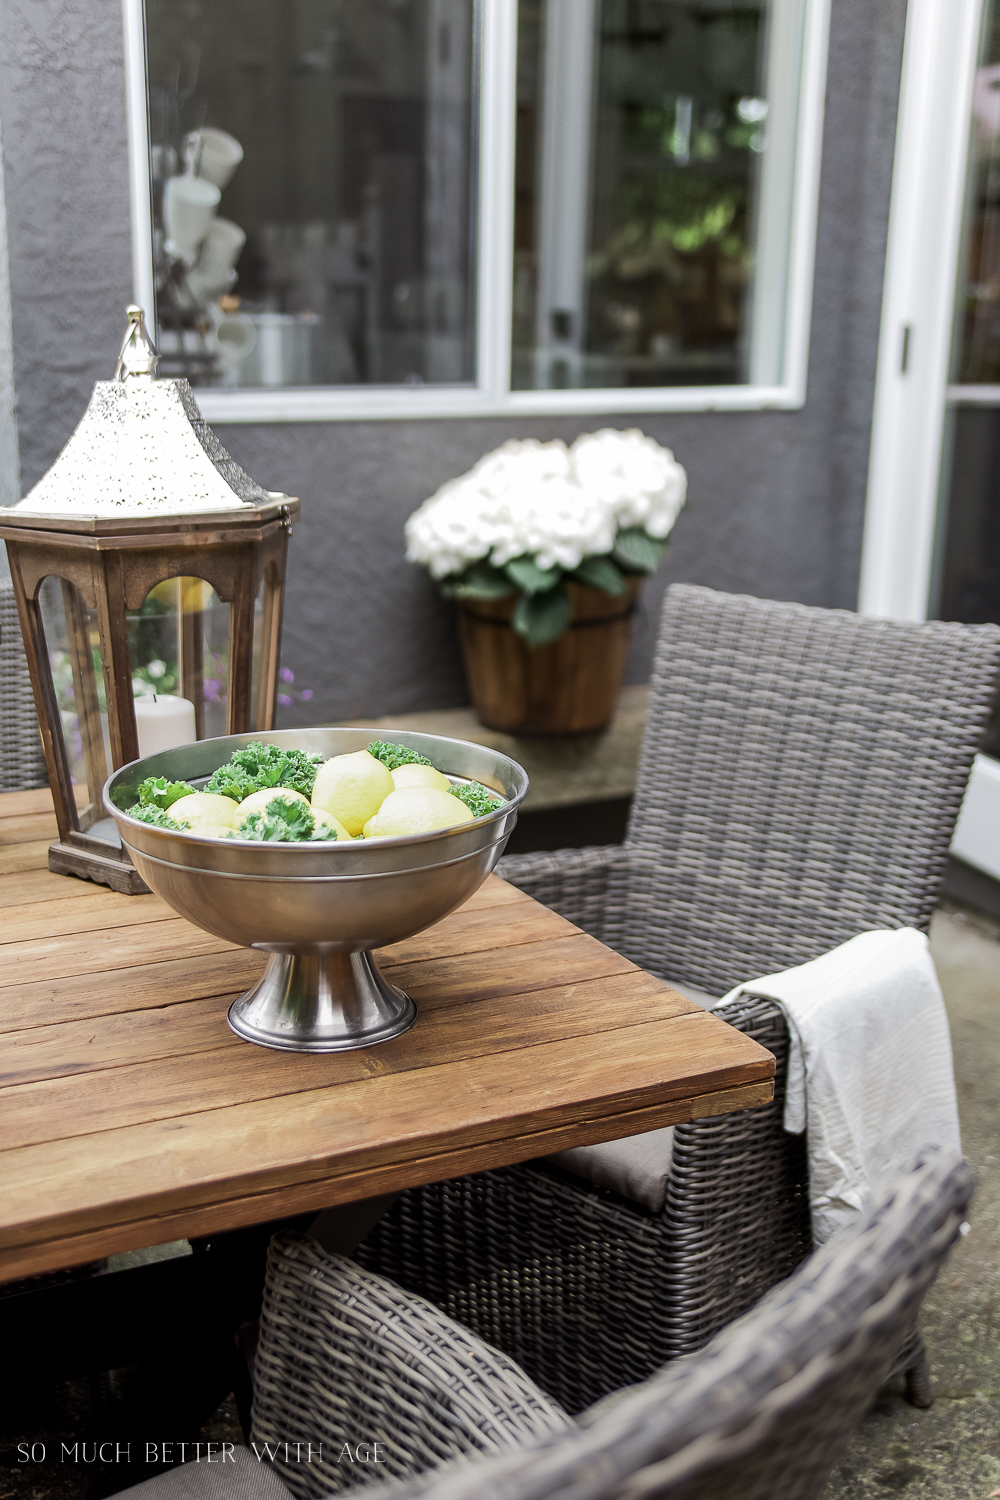 Lemon & Kale Centrepiece / How to Set a Casual Outdoor Table French Vintage Style - So Much Better With Age